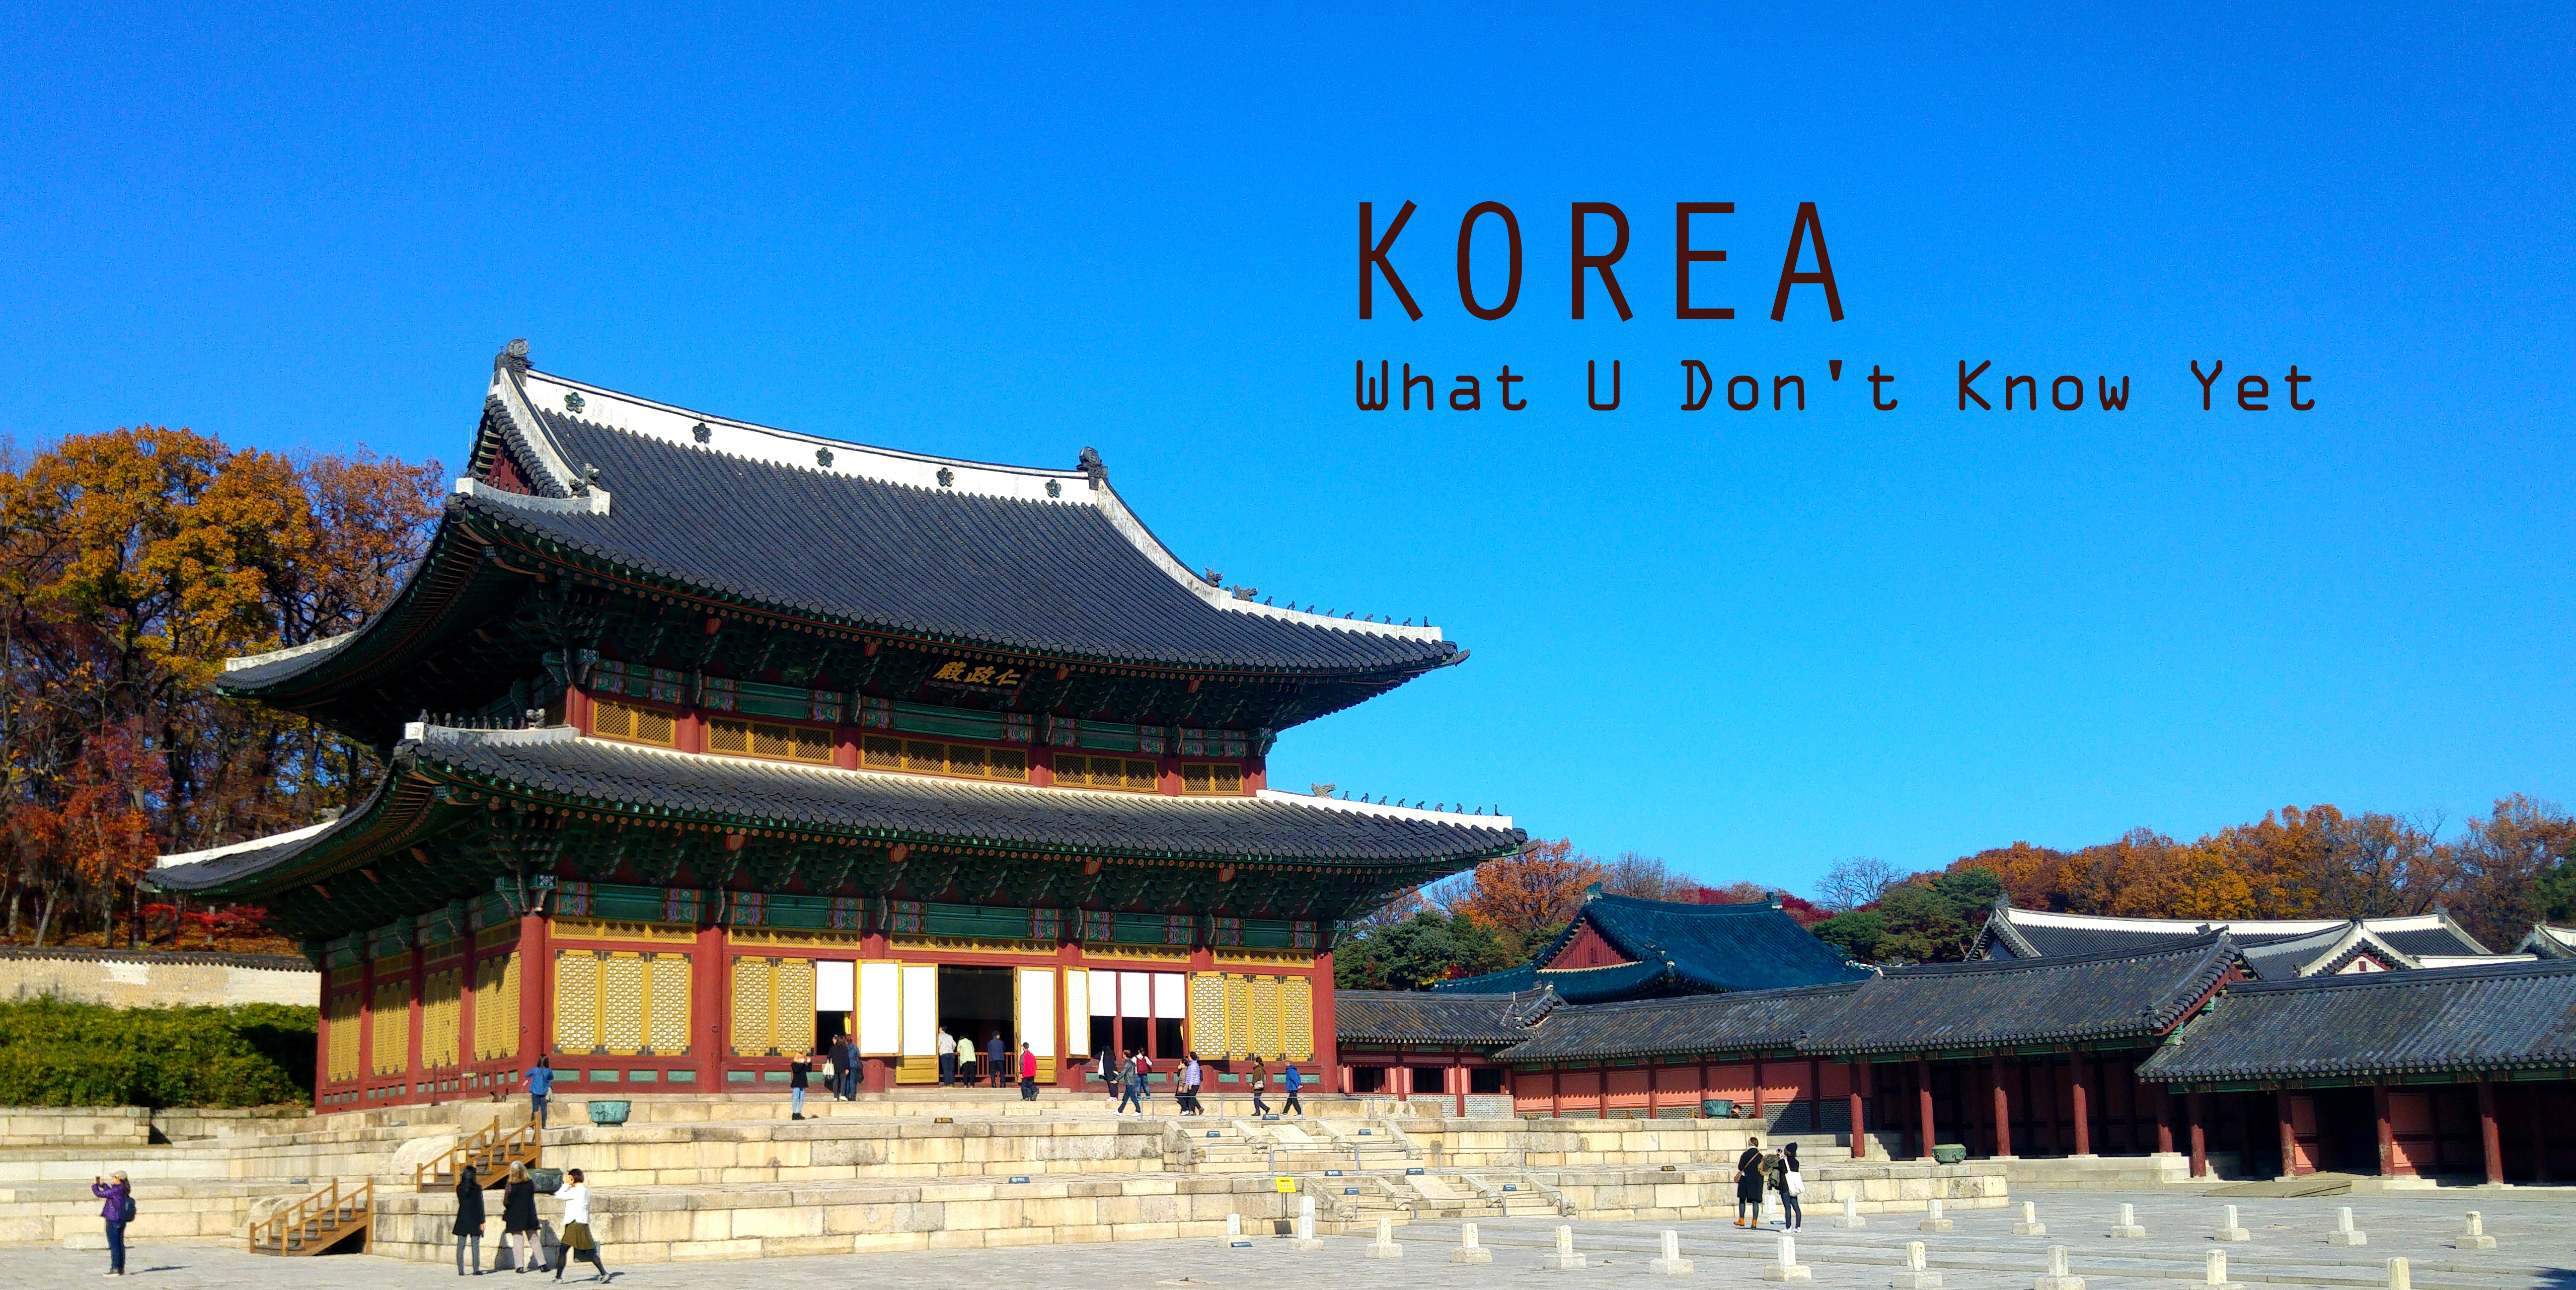 Korea - What u don't know yet